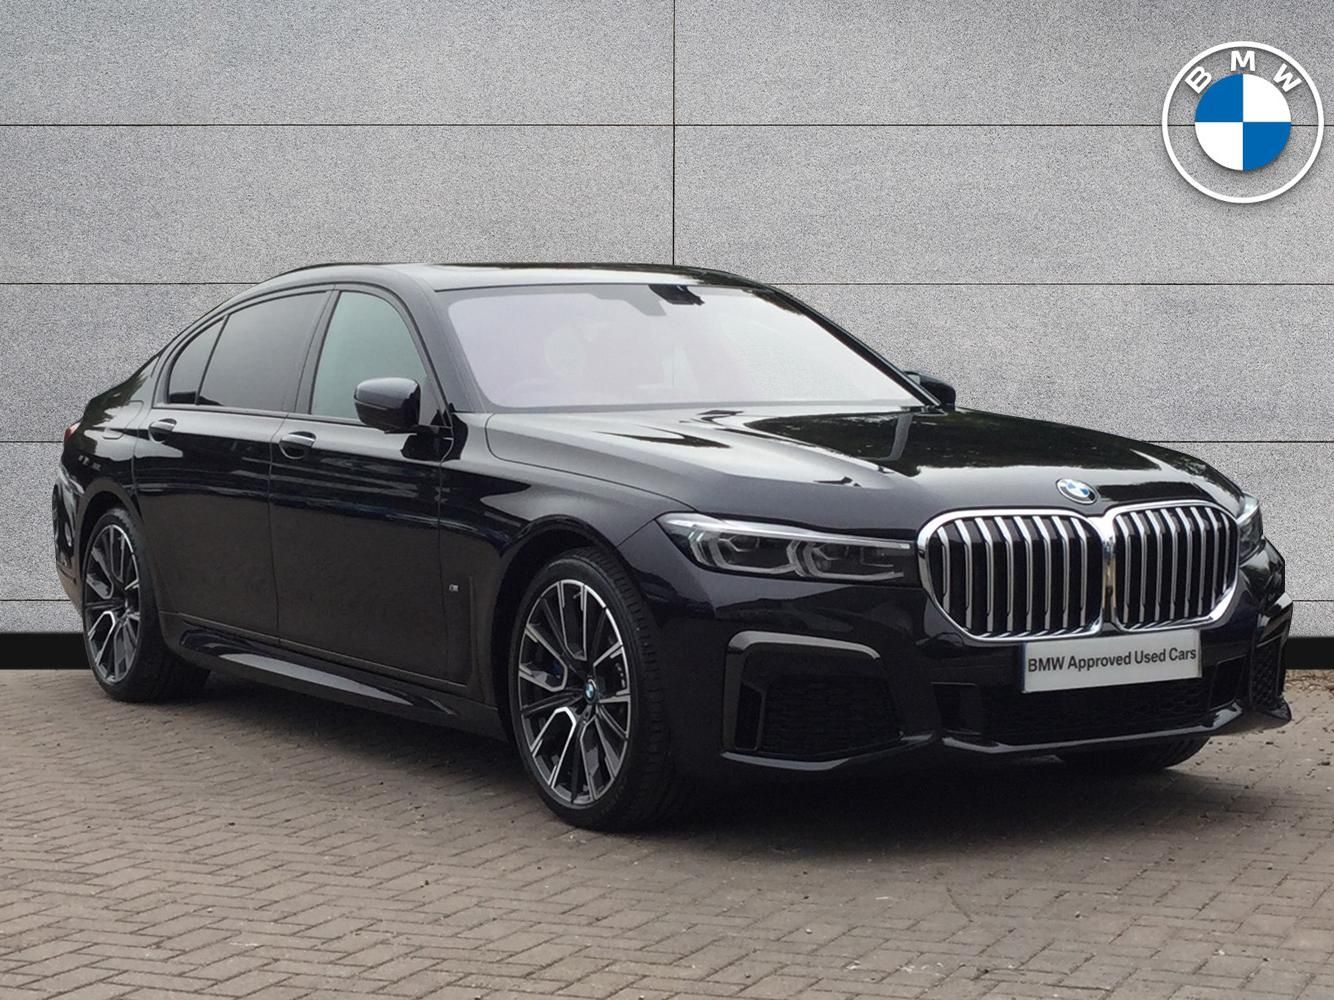 Bmw 7 Series Black 4dr 2020 For Sale In Worcester Rybrook